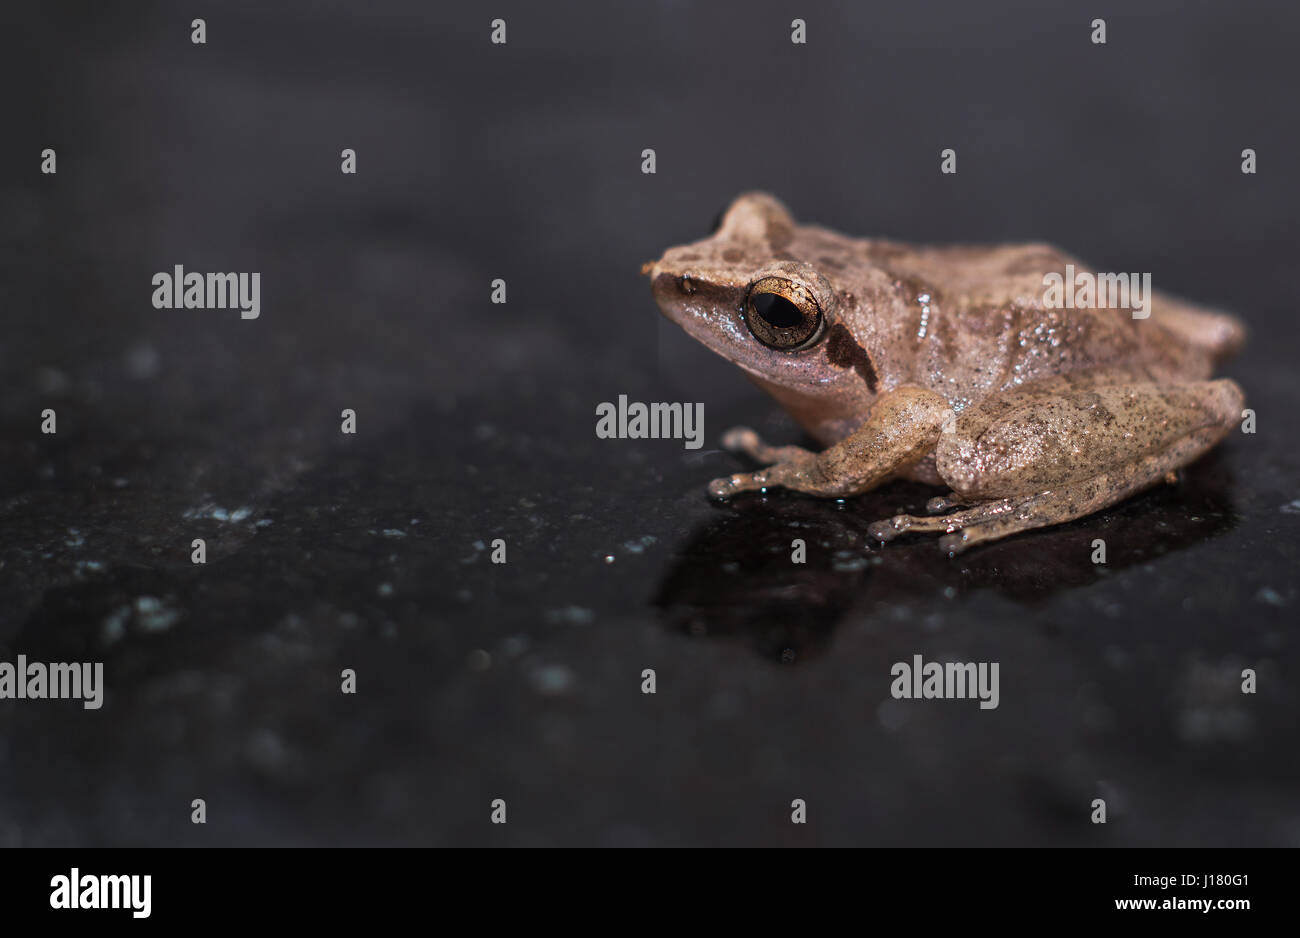 A Close Up shot of a normal Indian baby frog - Stock Image